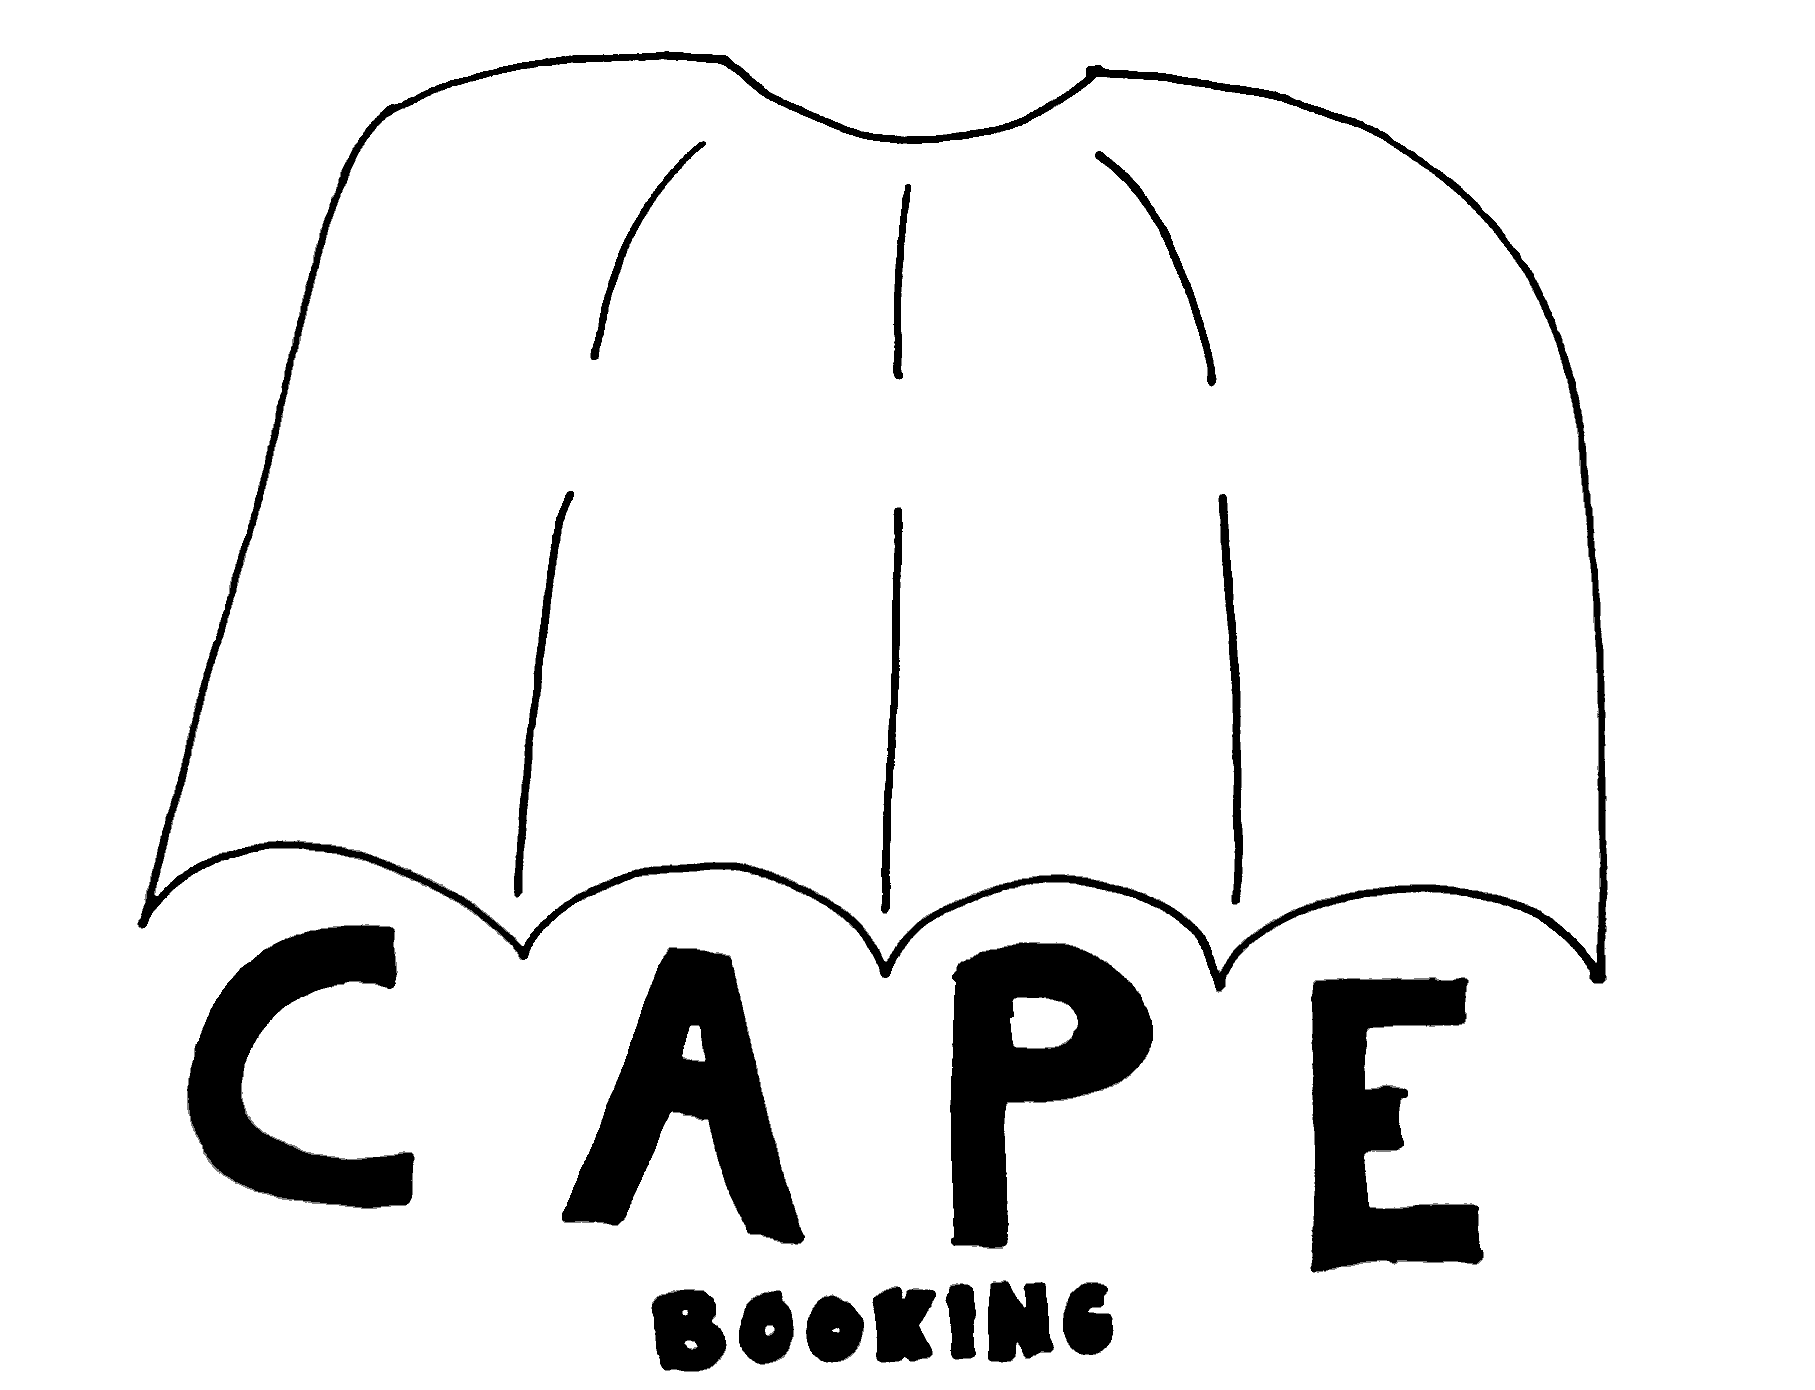 CAPE Booking